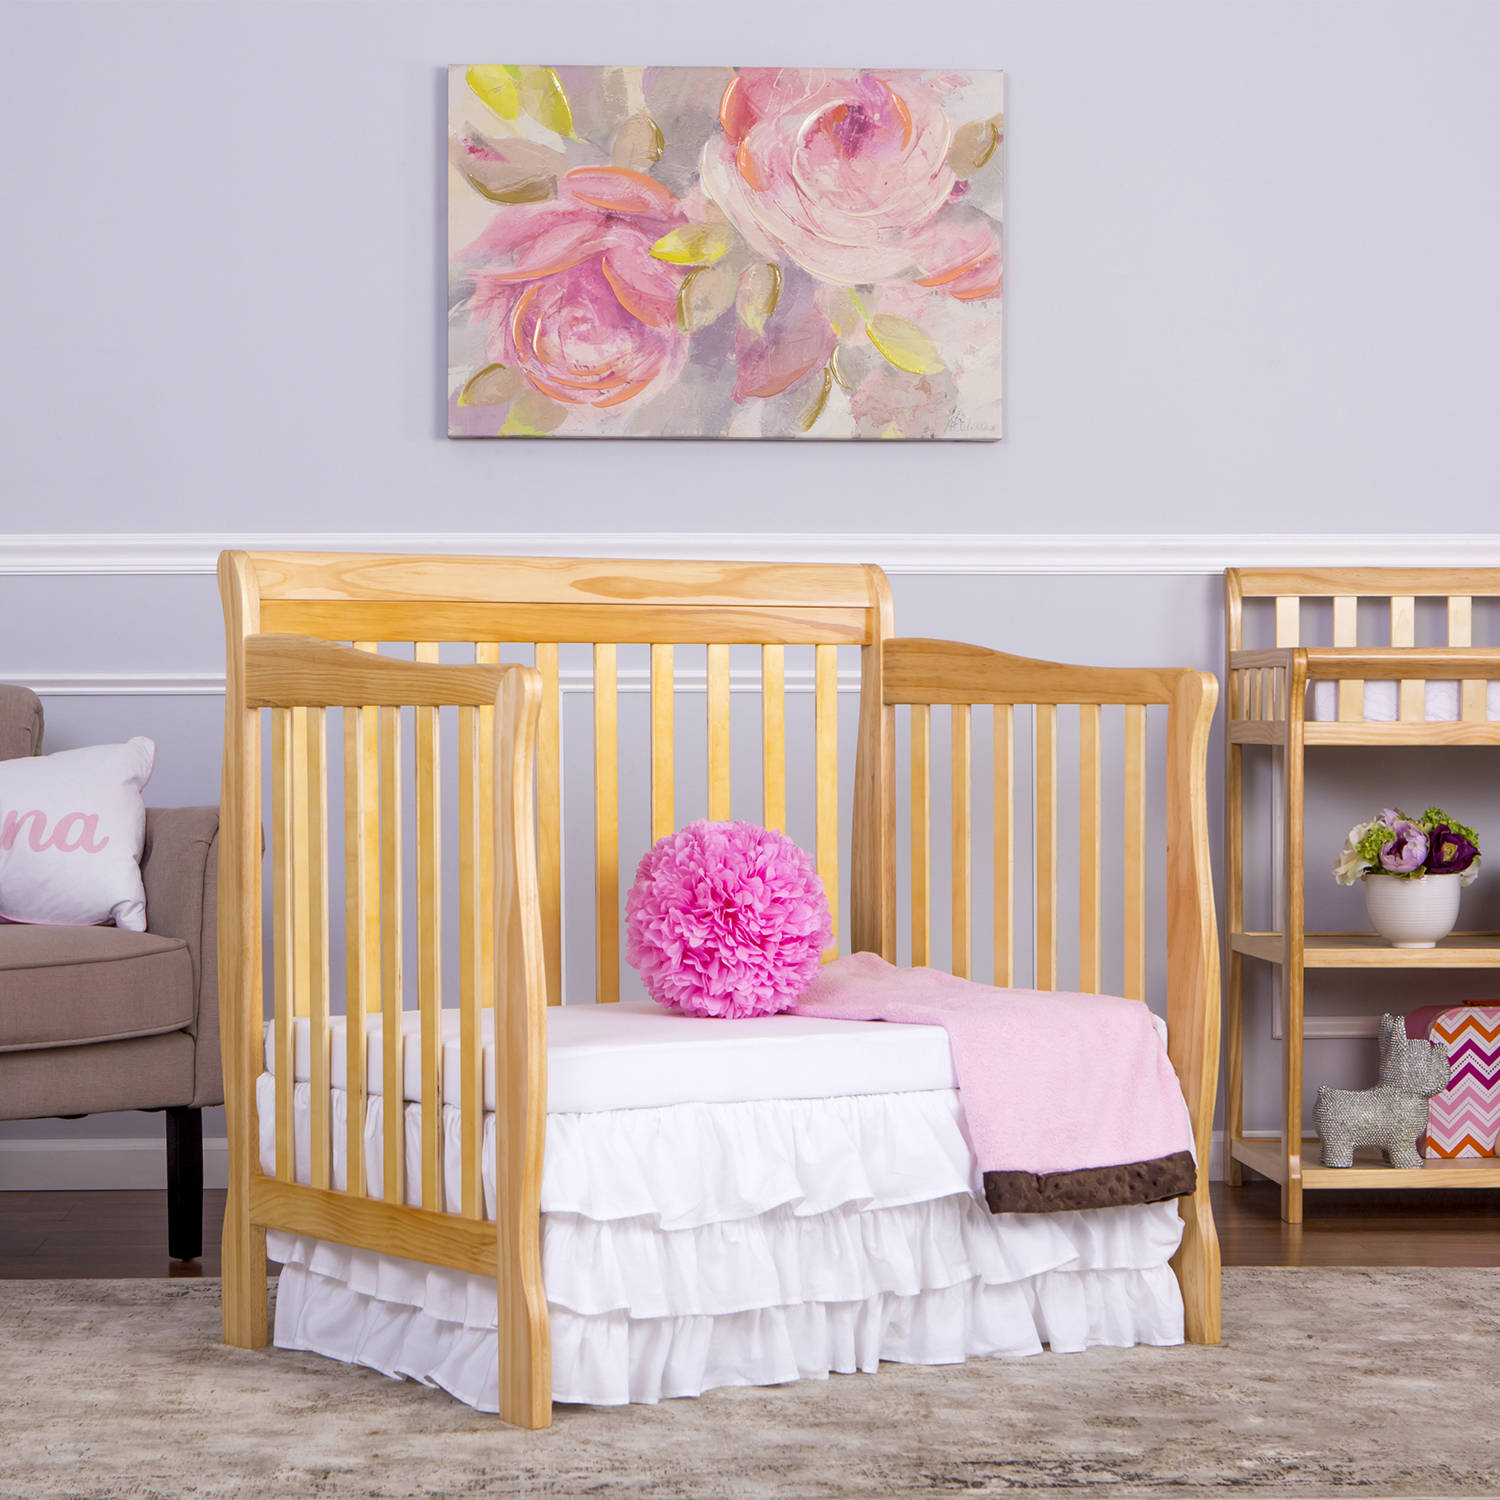 mini garden overstock cribs home in product me dream piper on crib convertible today shipping free espresso